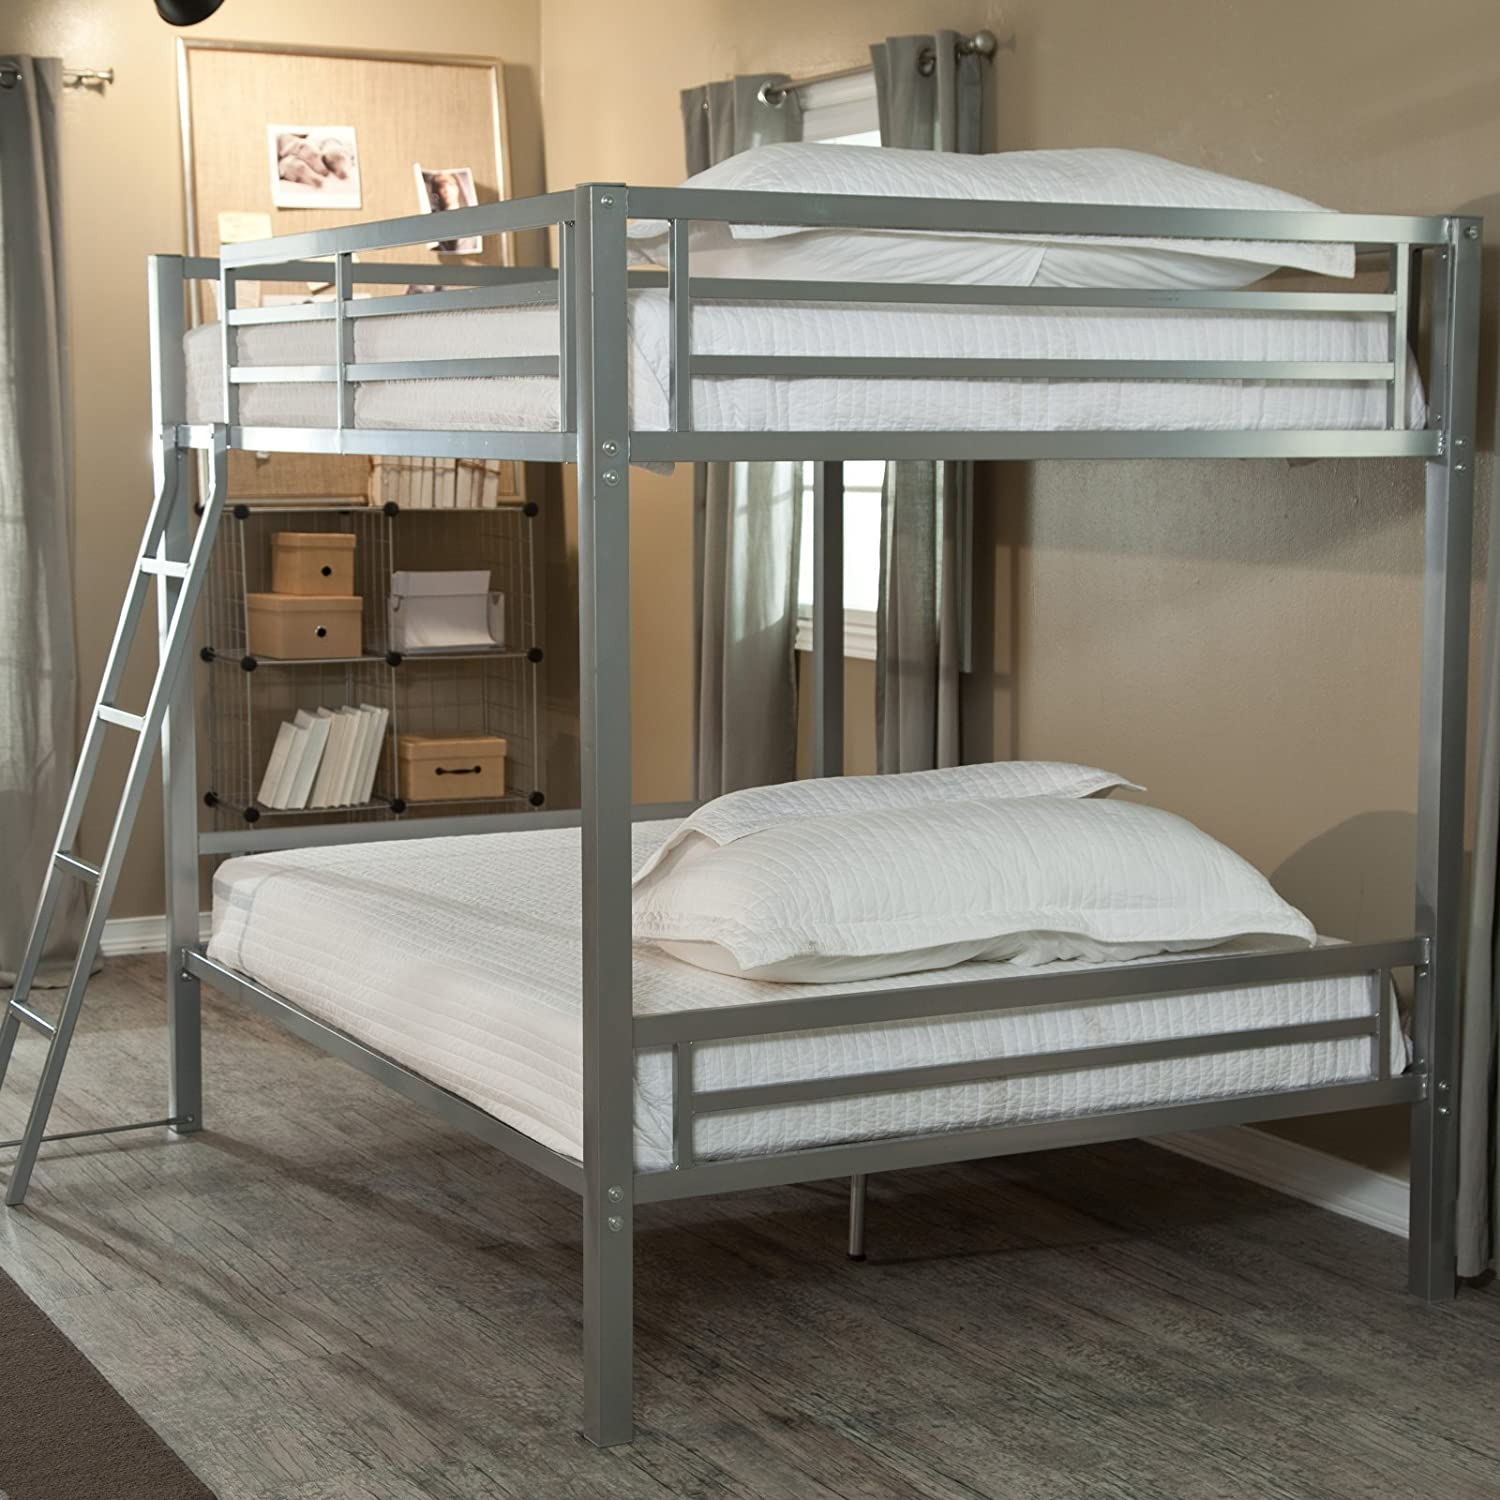 Merveilleux Amazon.com: Duro Hanley Full Over Full Bunk Bed   Silver: Kitchen U0026 Dining